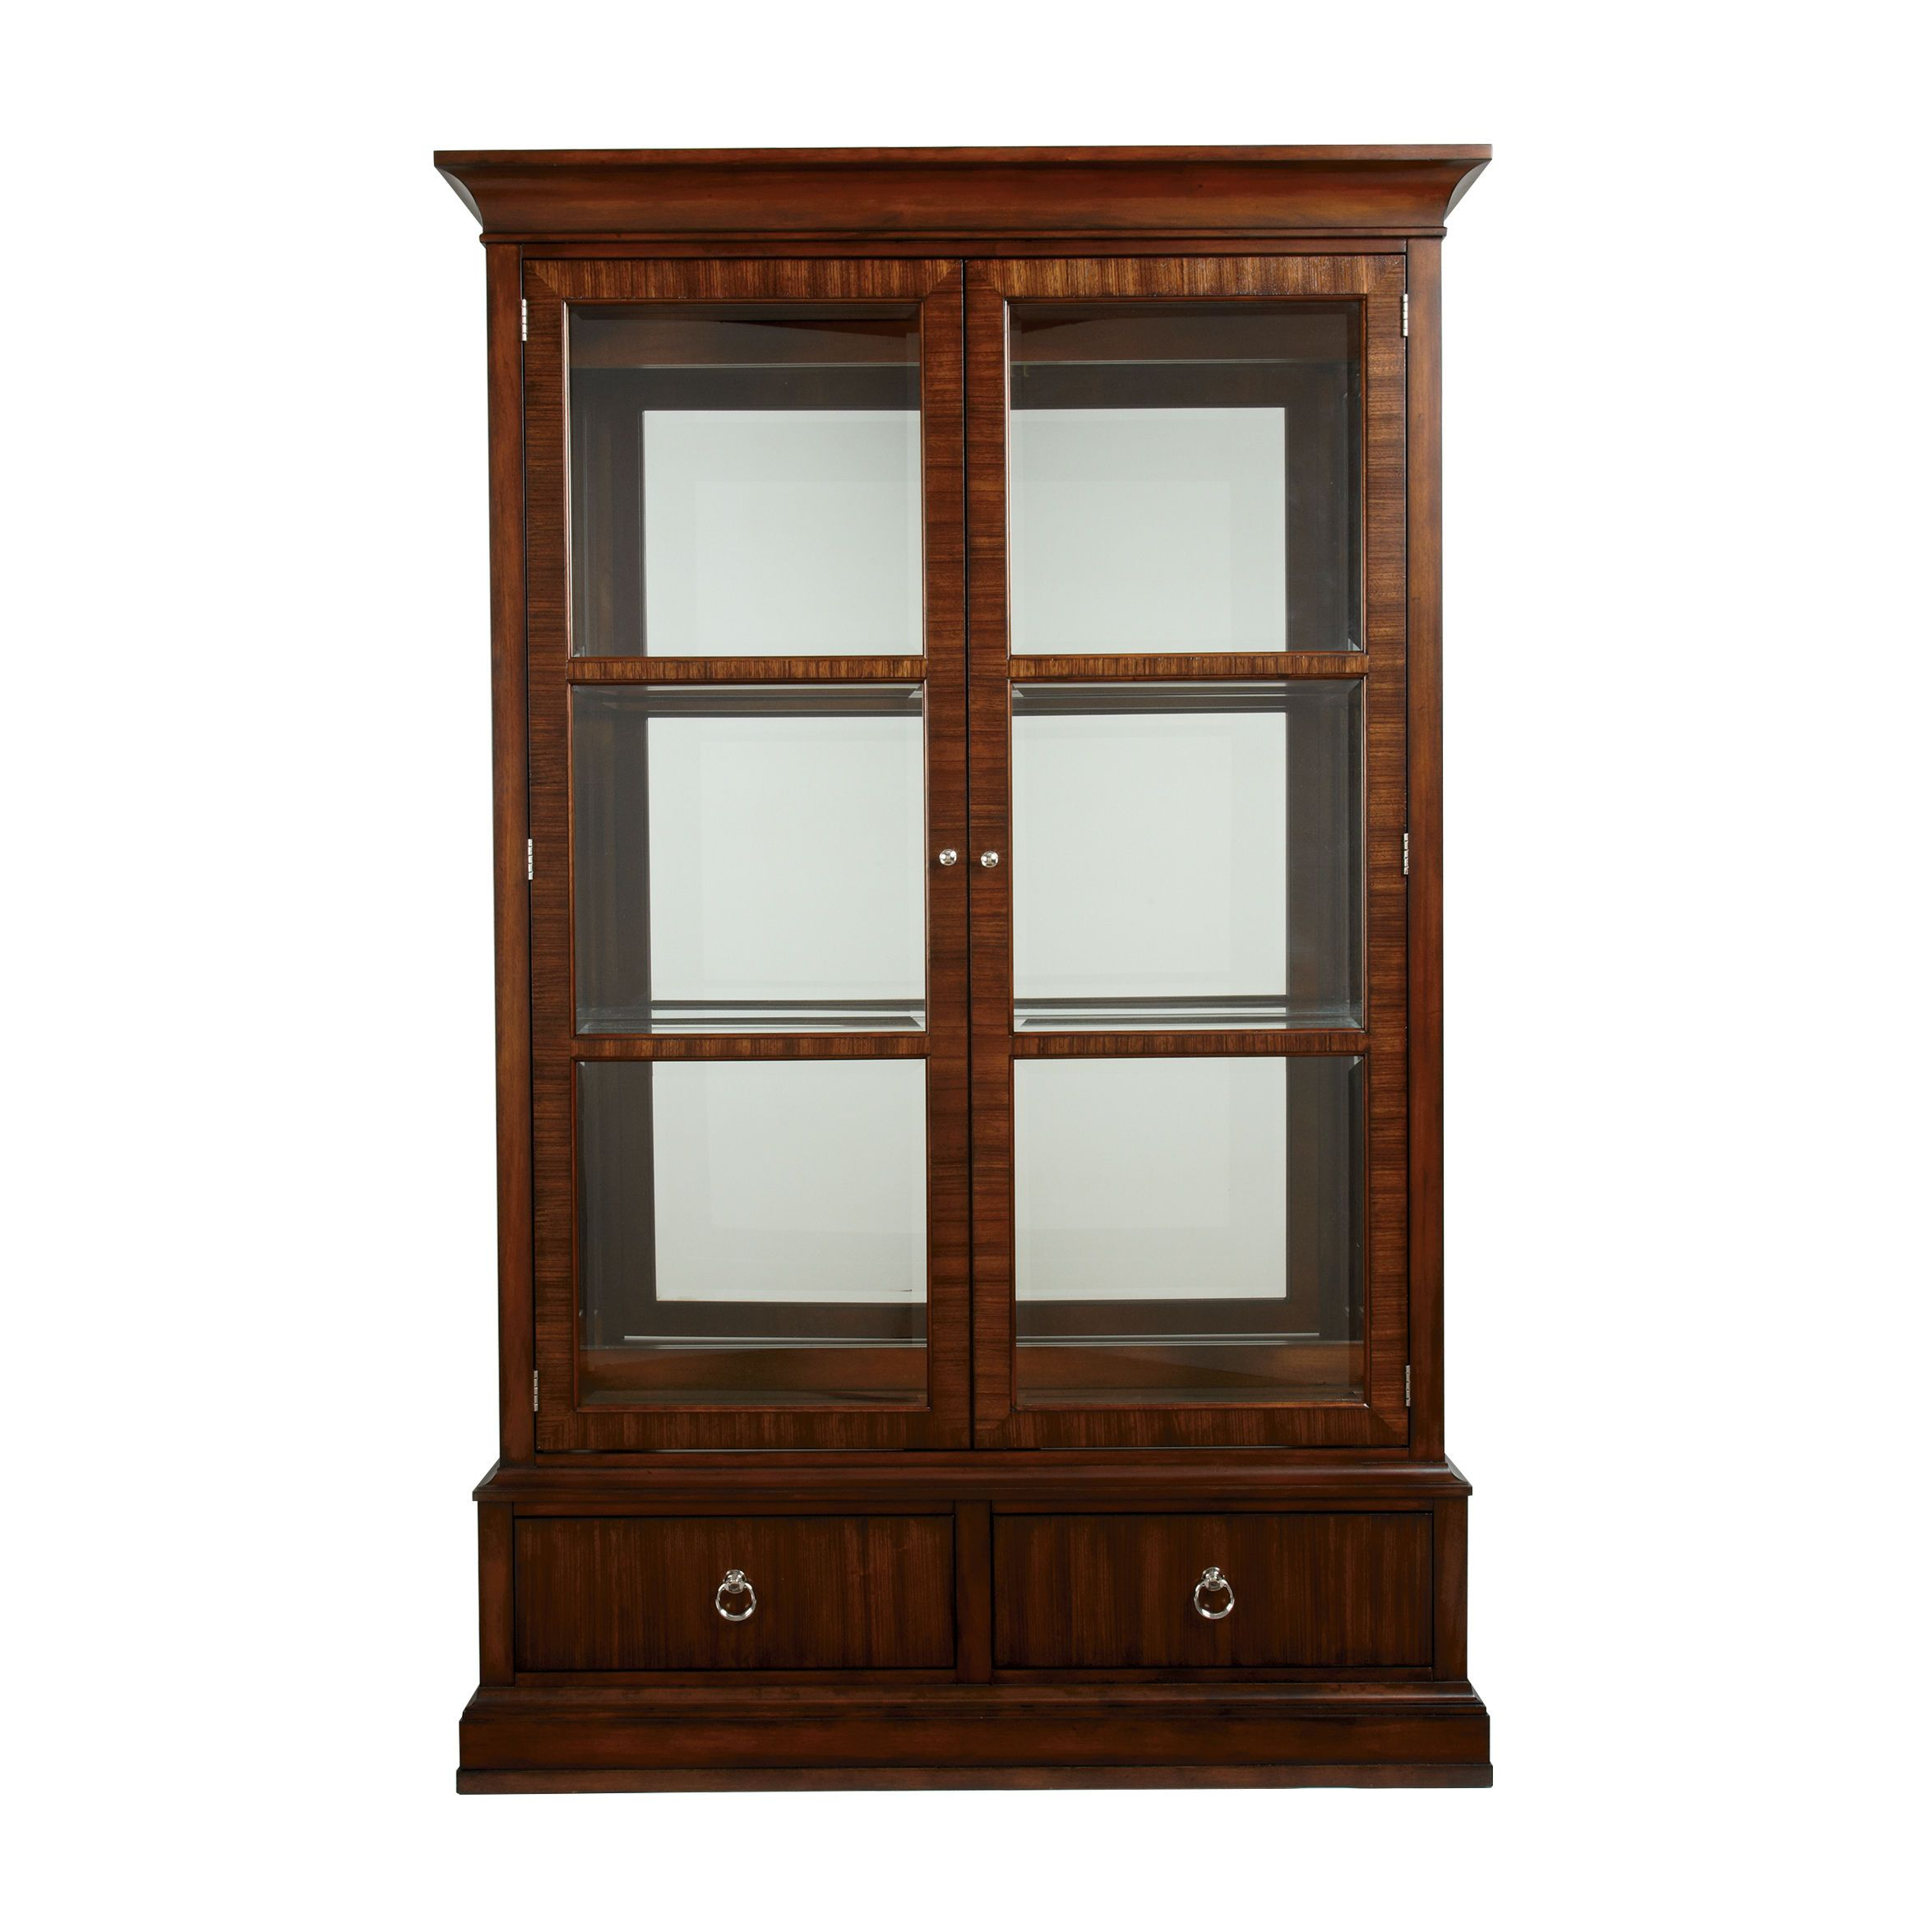 Ethan Allen Dining Rooms Brighton China Cabinet